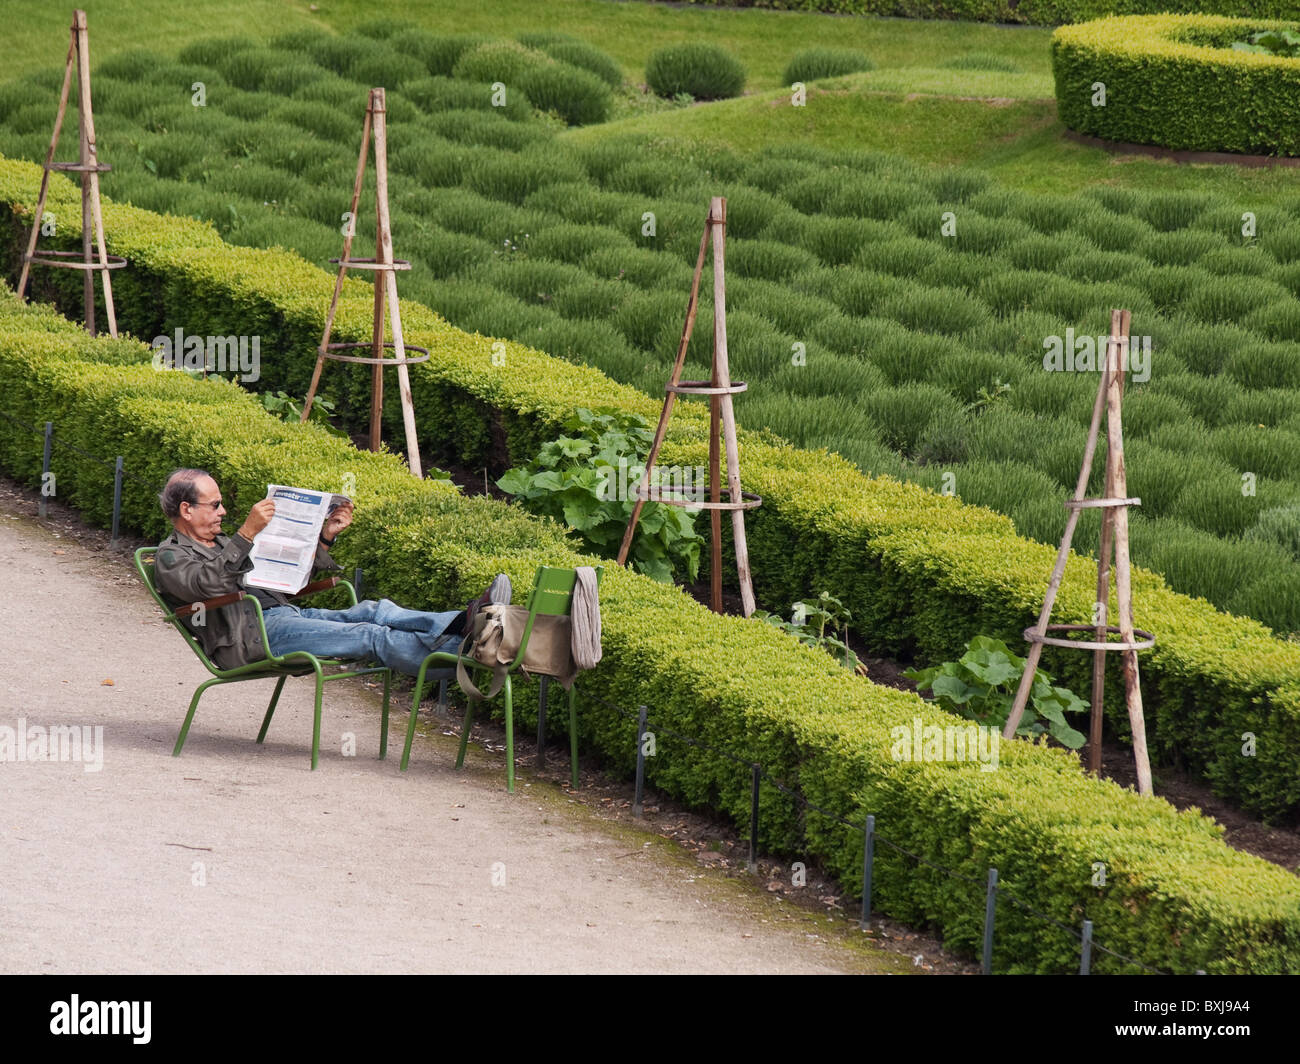 Readding in the parc - Stock Image